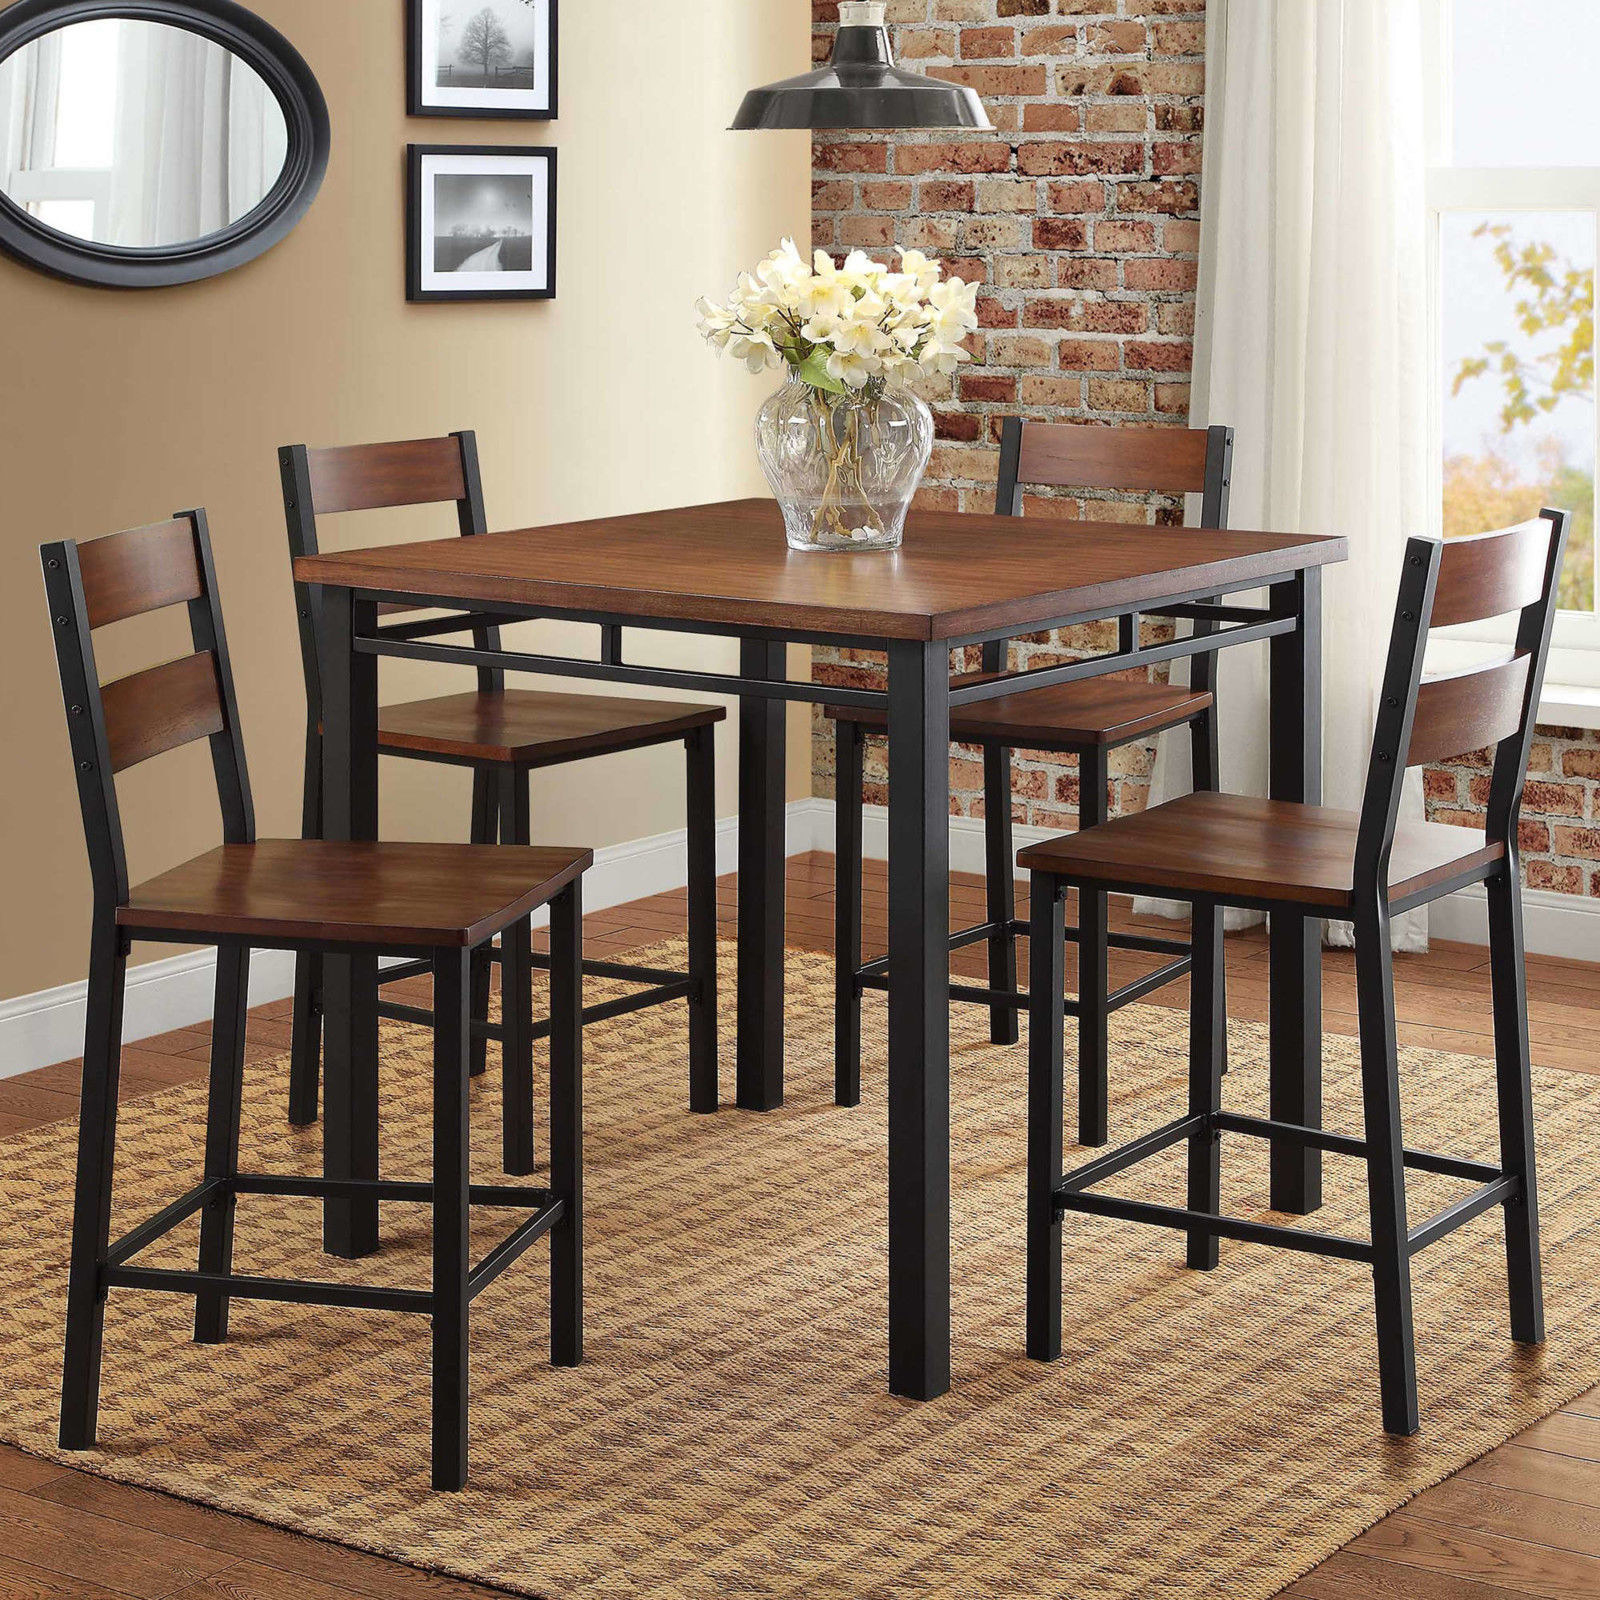 Where To Buy Discount Furniture Bob S Discount Furniture Three